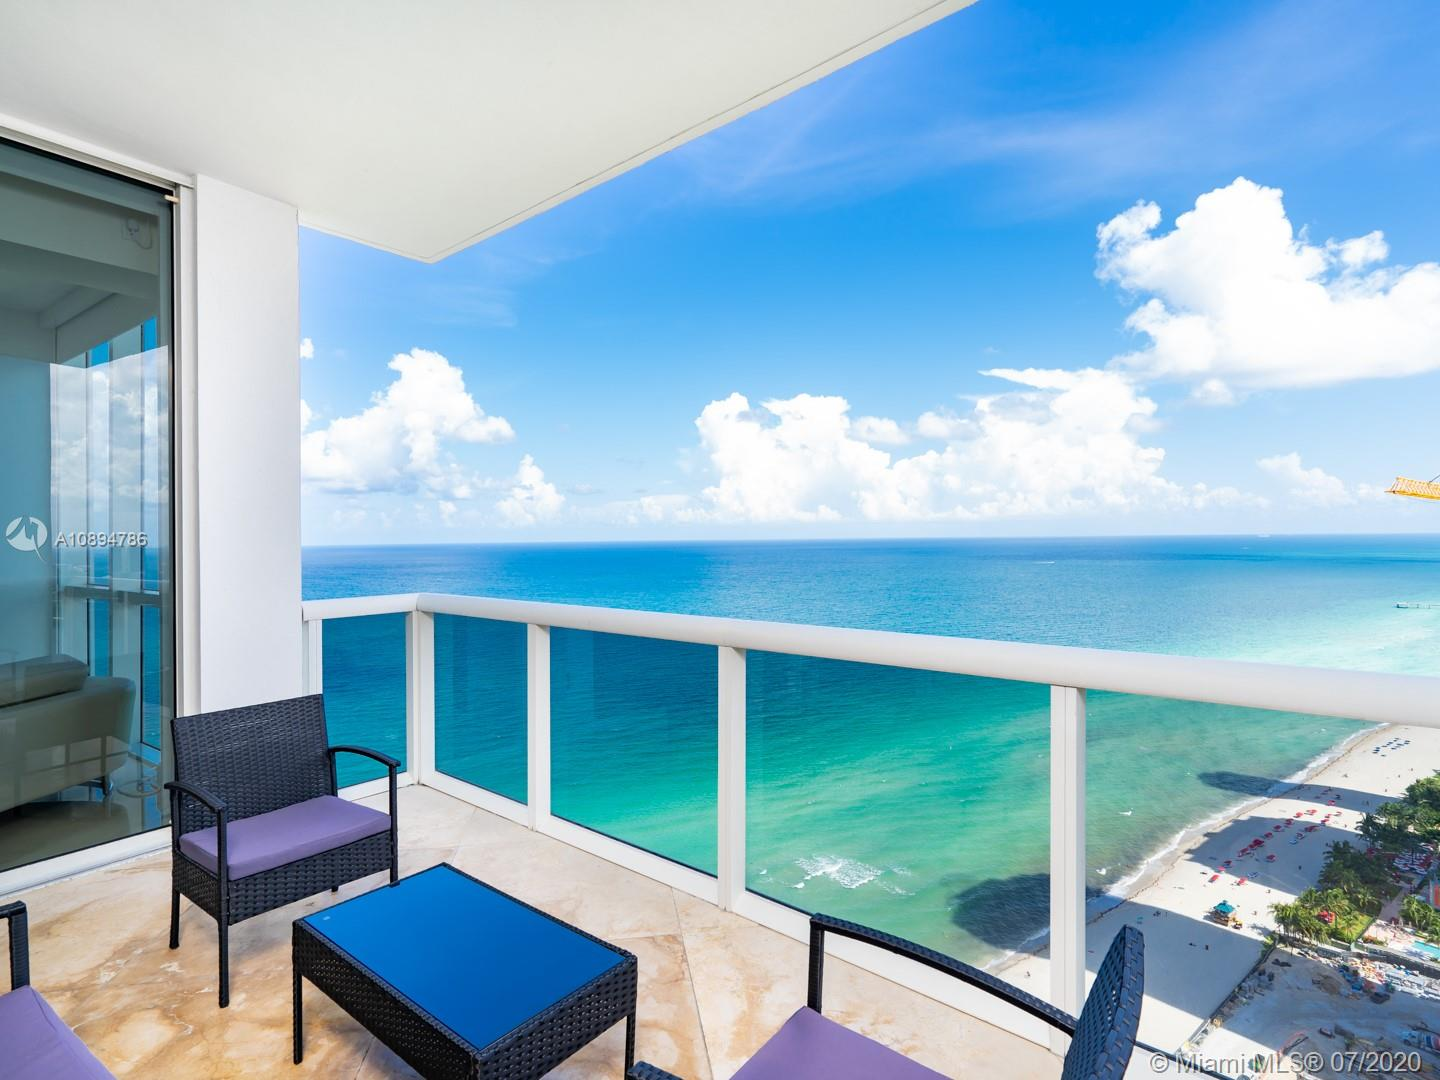 INCREDIBLE CONDO IN SUNNY ISLES! ENTER THRU PRIVATE ELEVATOR FOYER & IMMEDIATELY SEE DIRECT OCEAN VIEWS & DOWNTOWN MIAMI SKYLINE ON ONE SIDE & PRISTINE INTRACOASTAL VIEWS & MAGNIFICENT SUNSETS. SPACIOUS + IMPECCABLE 3BEDROOMS+3.5BATHROOMS & 2 BALCONIES W/ENDLESS WATER VIEWS.  MARBLE FLOORS, OPEN KITCHEN, SS APPLIANCES, SUB ZERO FRIDGE, GRANITE COUNTER TOPS.CUSTOM WINDOW TREATMENTS & WALK-IN CLOSETS. 5* AMENITIES: 24H SECURITY, VALET, 3 POOLS, 4 HOT TUBS, TENNIS COURTS, FITNESS CENTER/SPA, BEACH CLUB, 3 RESTAURANTS, BEACH BAR, F&B ROOM SERVICE, DOG PARK, CHILD PLAY AREA, FREE VALET, EXCELLENT BUILDING MANAGEMENT, FULL ACCESS TO TRUMP HOTEL+MORE!